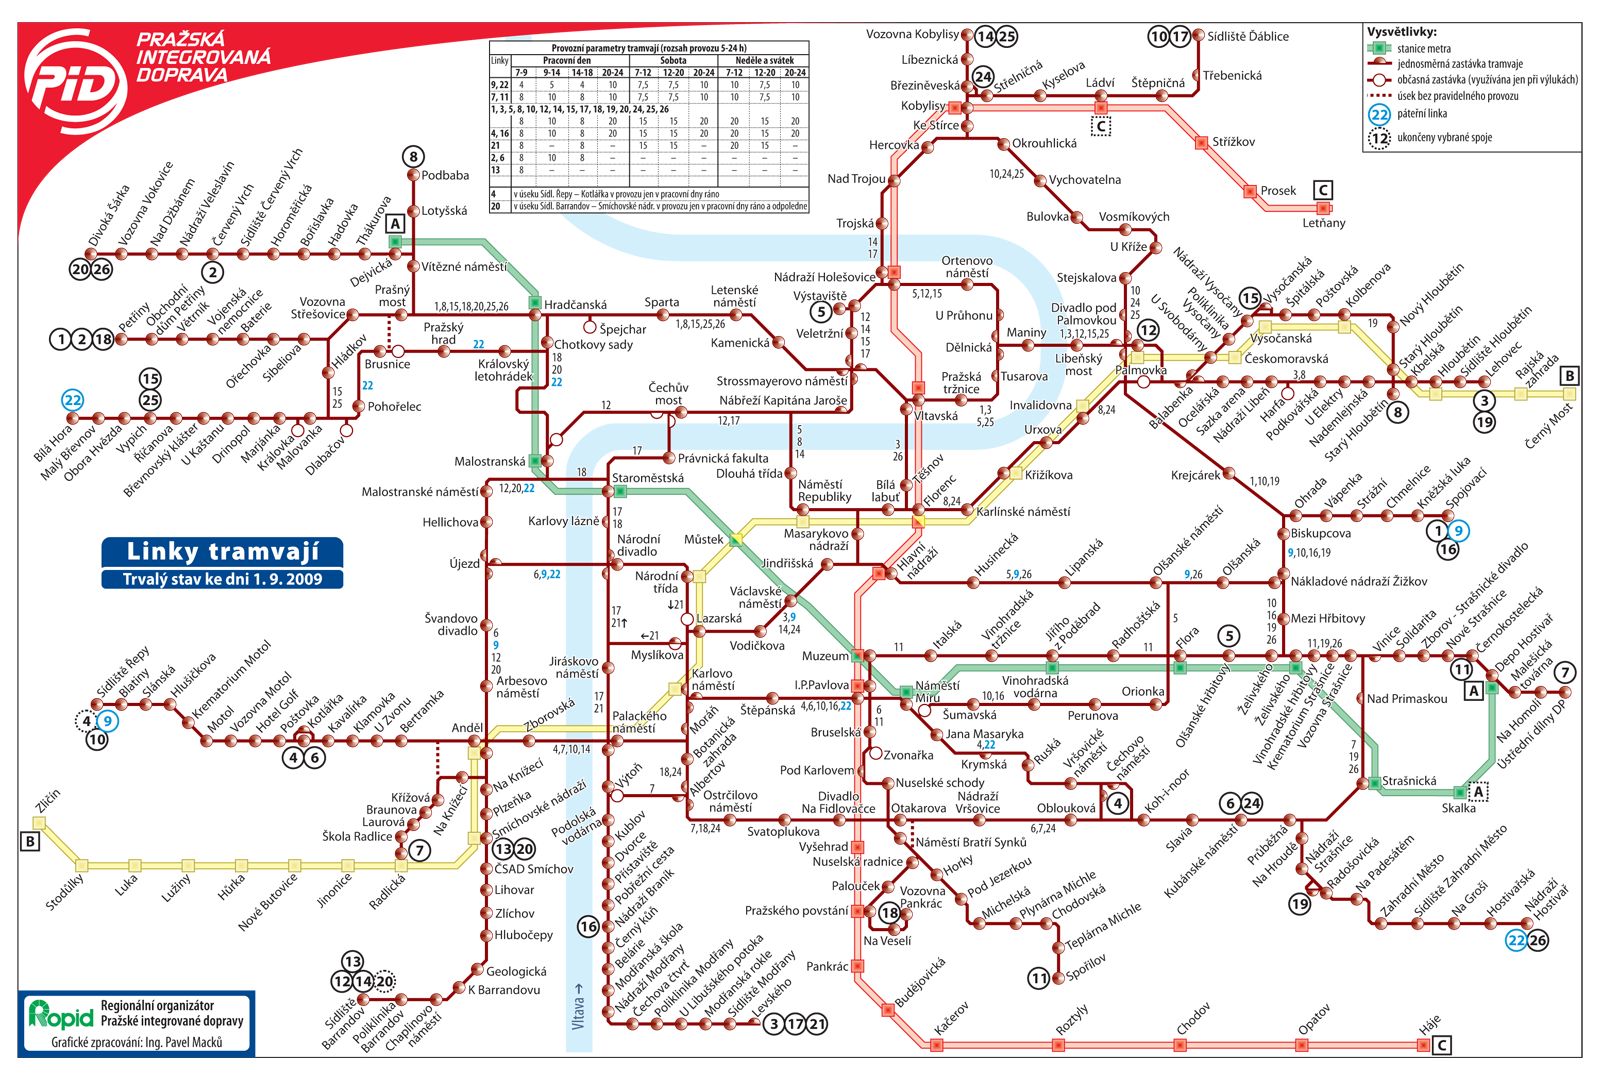 tram map in prague Prague Metro Tram Map tram map in prague